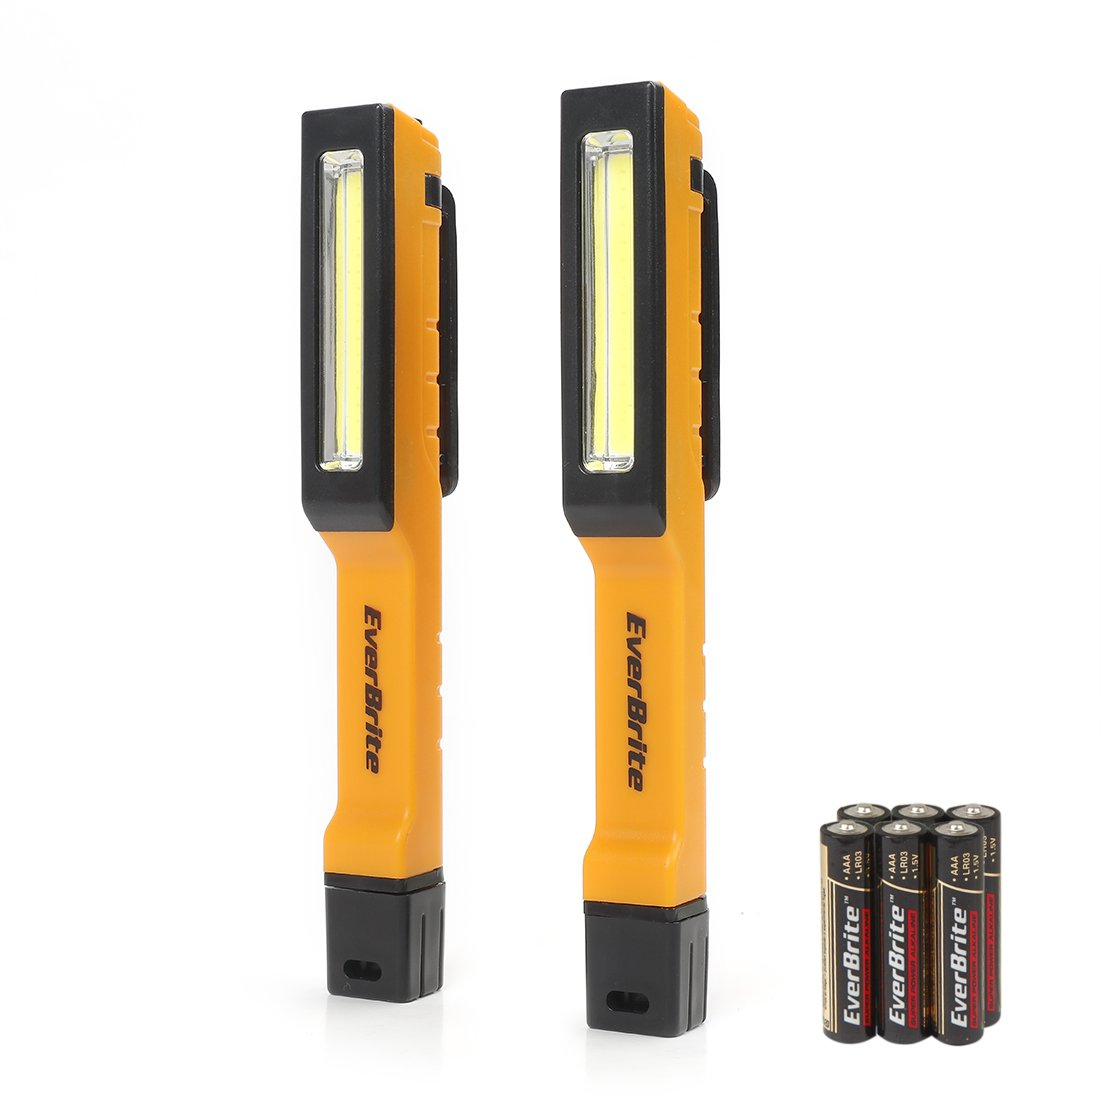 EverBrite COB Work Light 2 Pack 150 Lumen Pocket LED Flashlight with 180° Twist Magnetic Clip 6 AAA Batteries Included